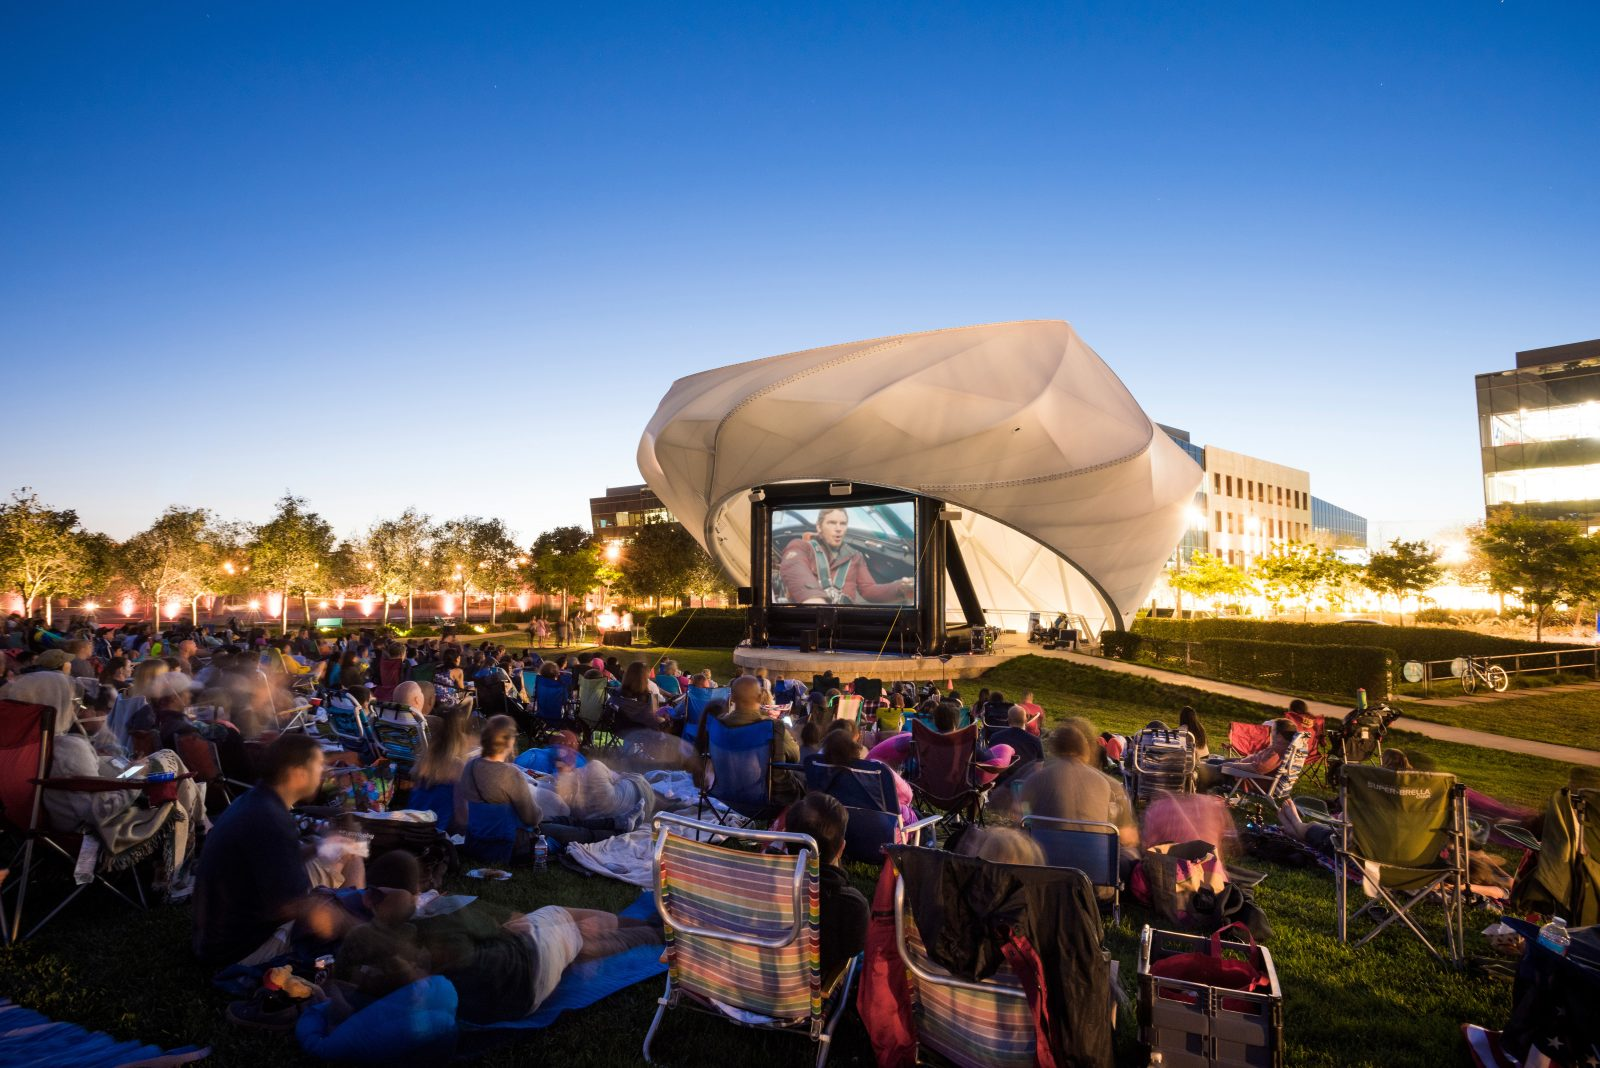 Movies in the park at Playa Vista in Los Angeles, CA | Brookfield Residential